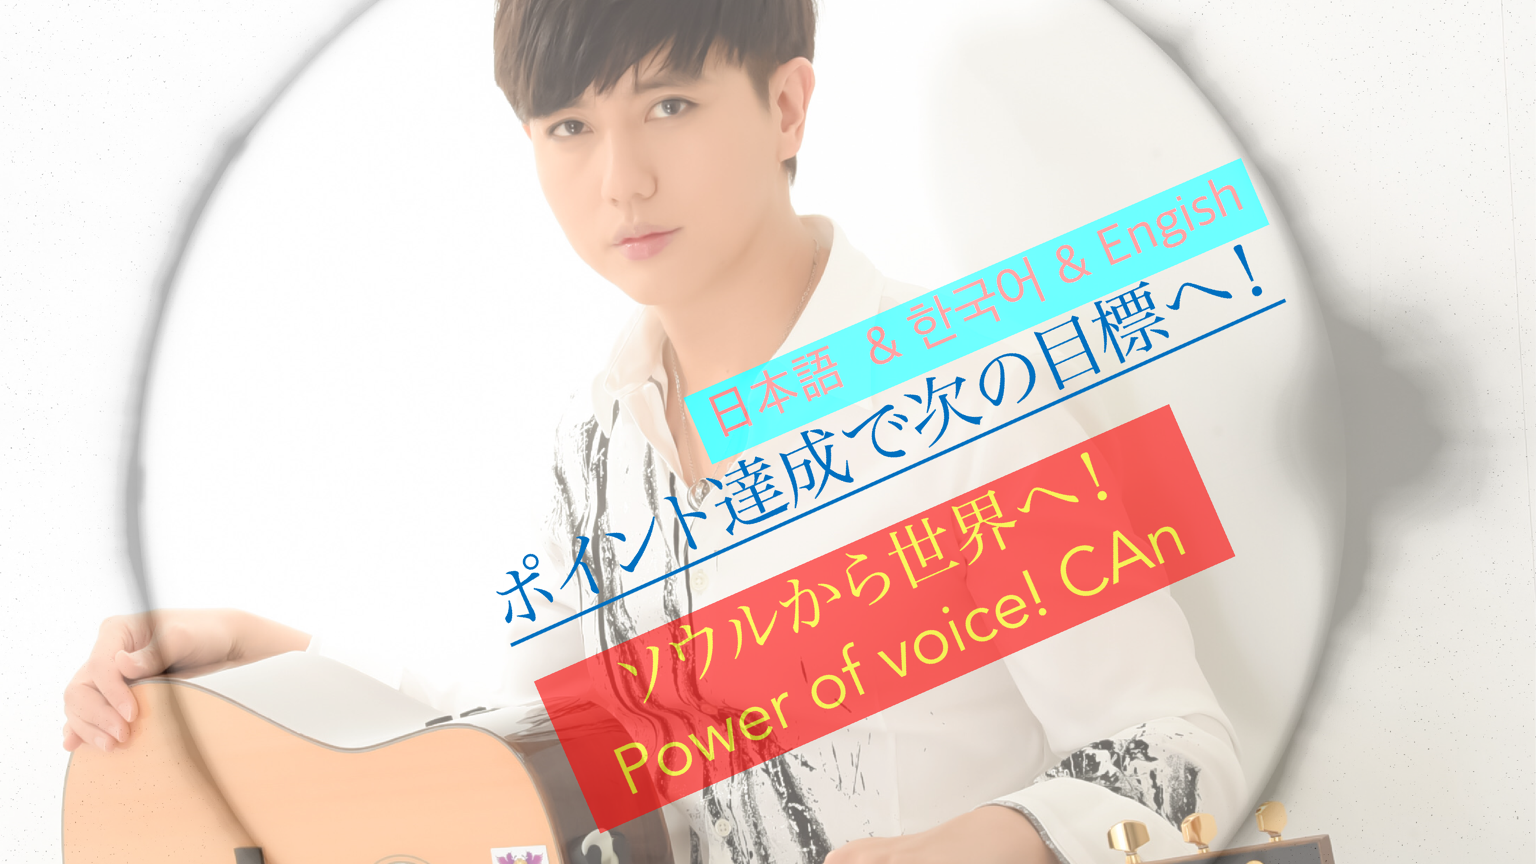 CAn K-Music